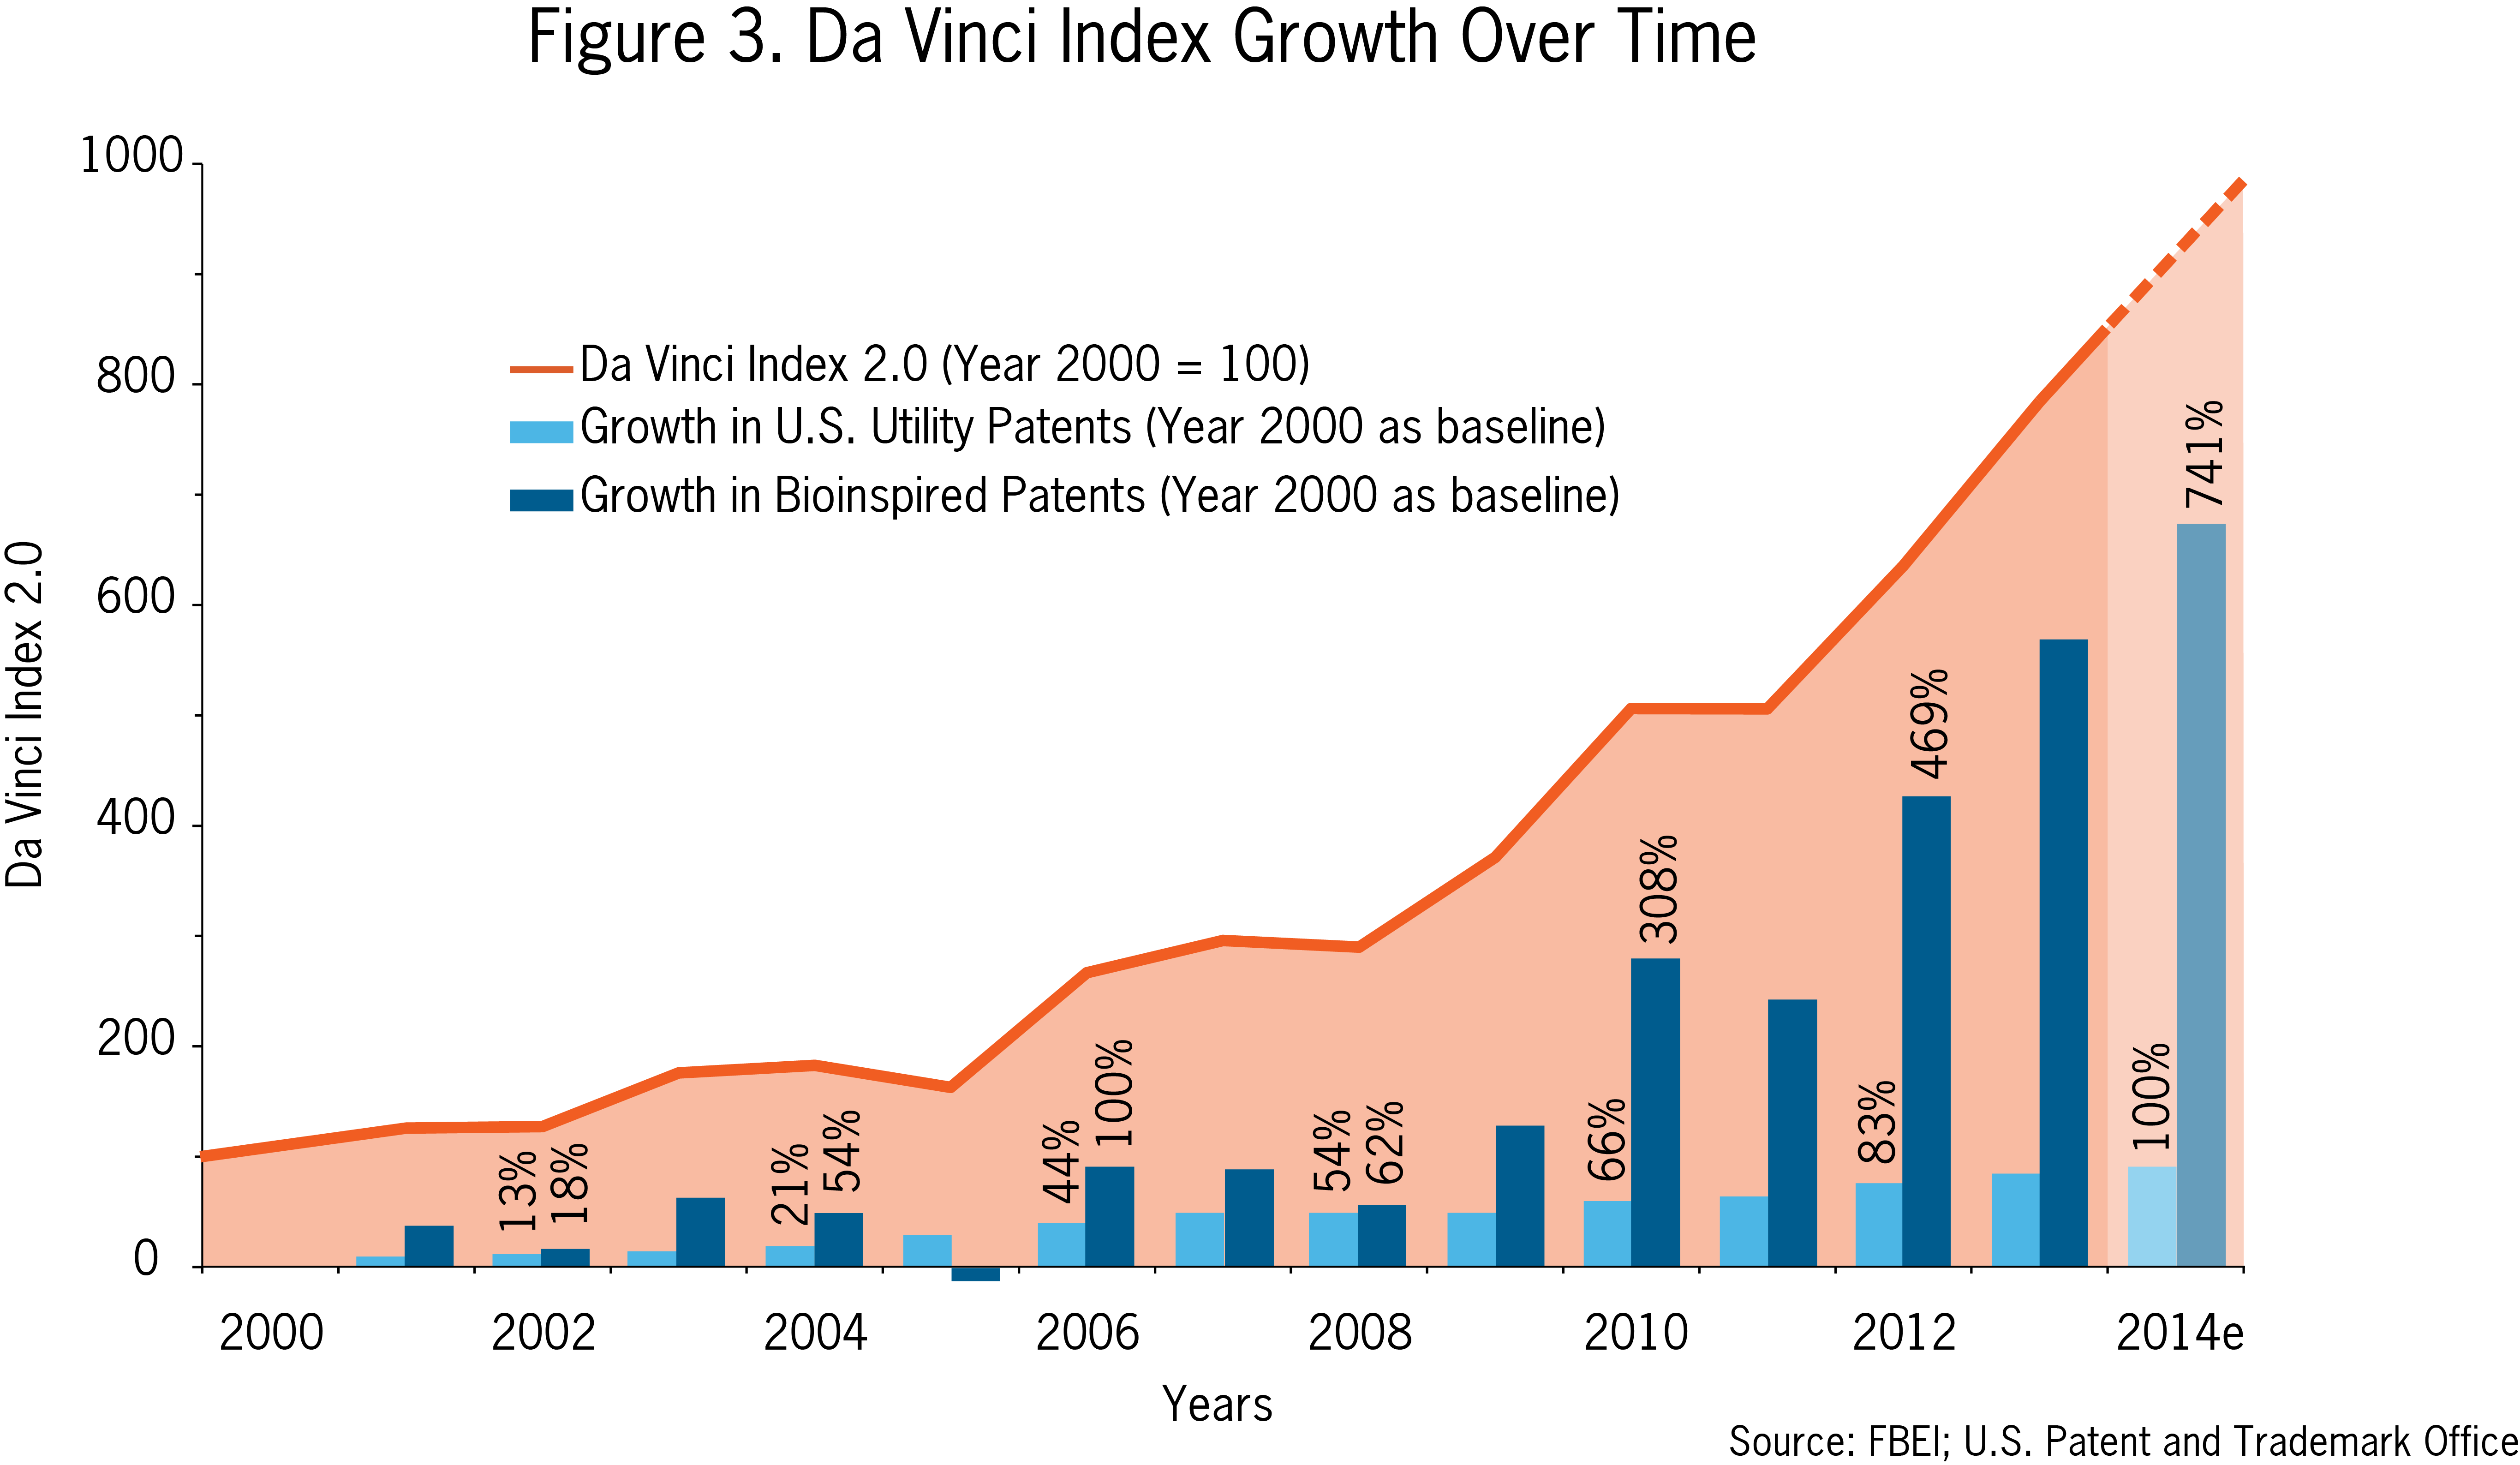 DaVinci growth index over time